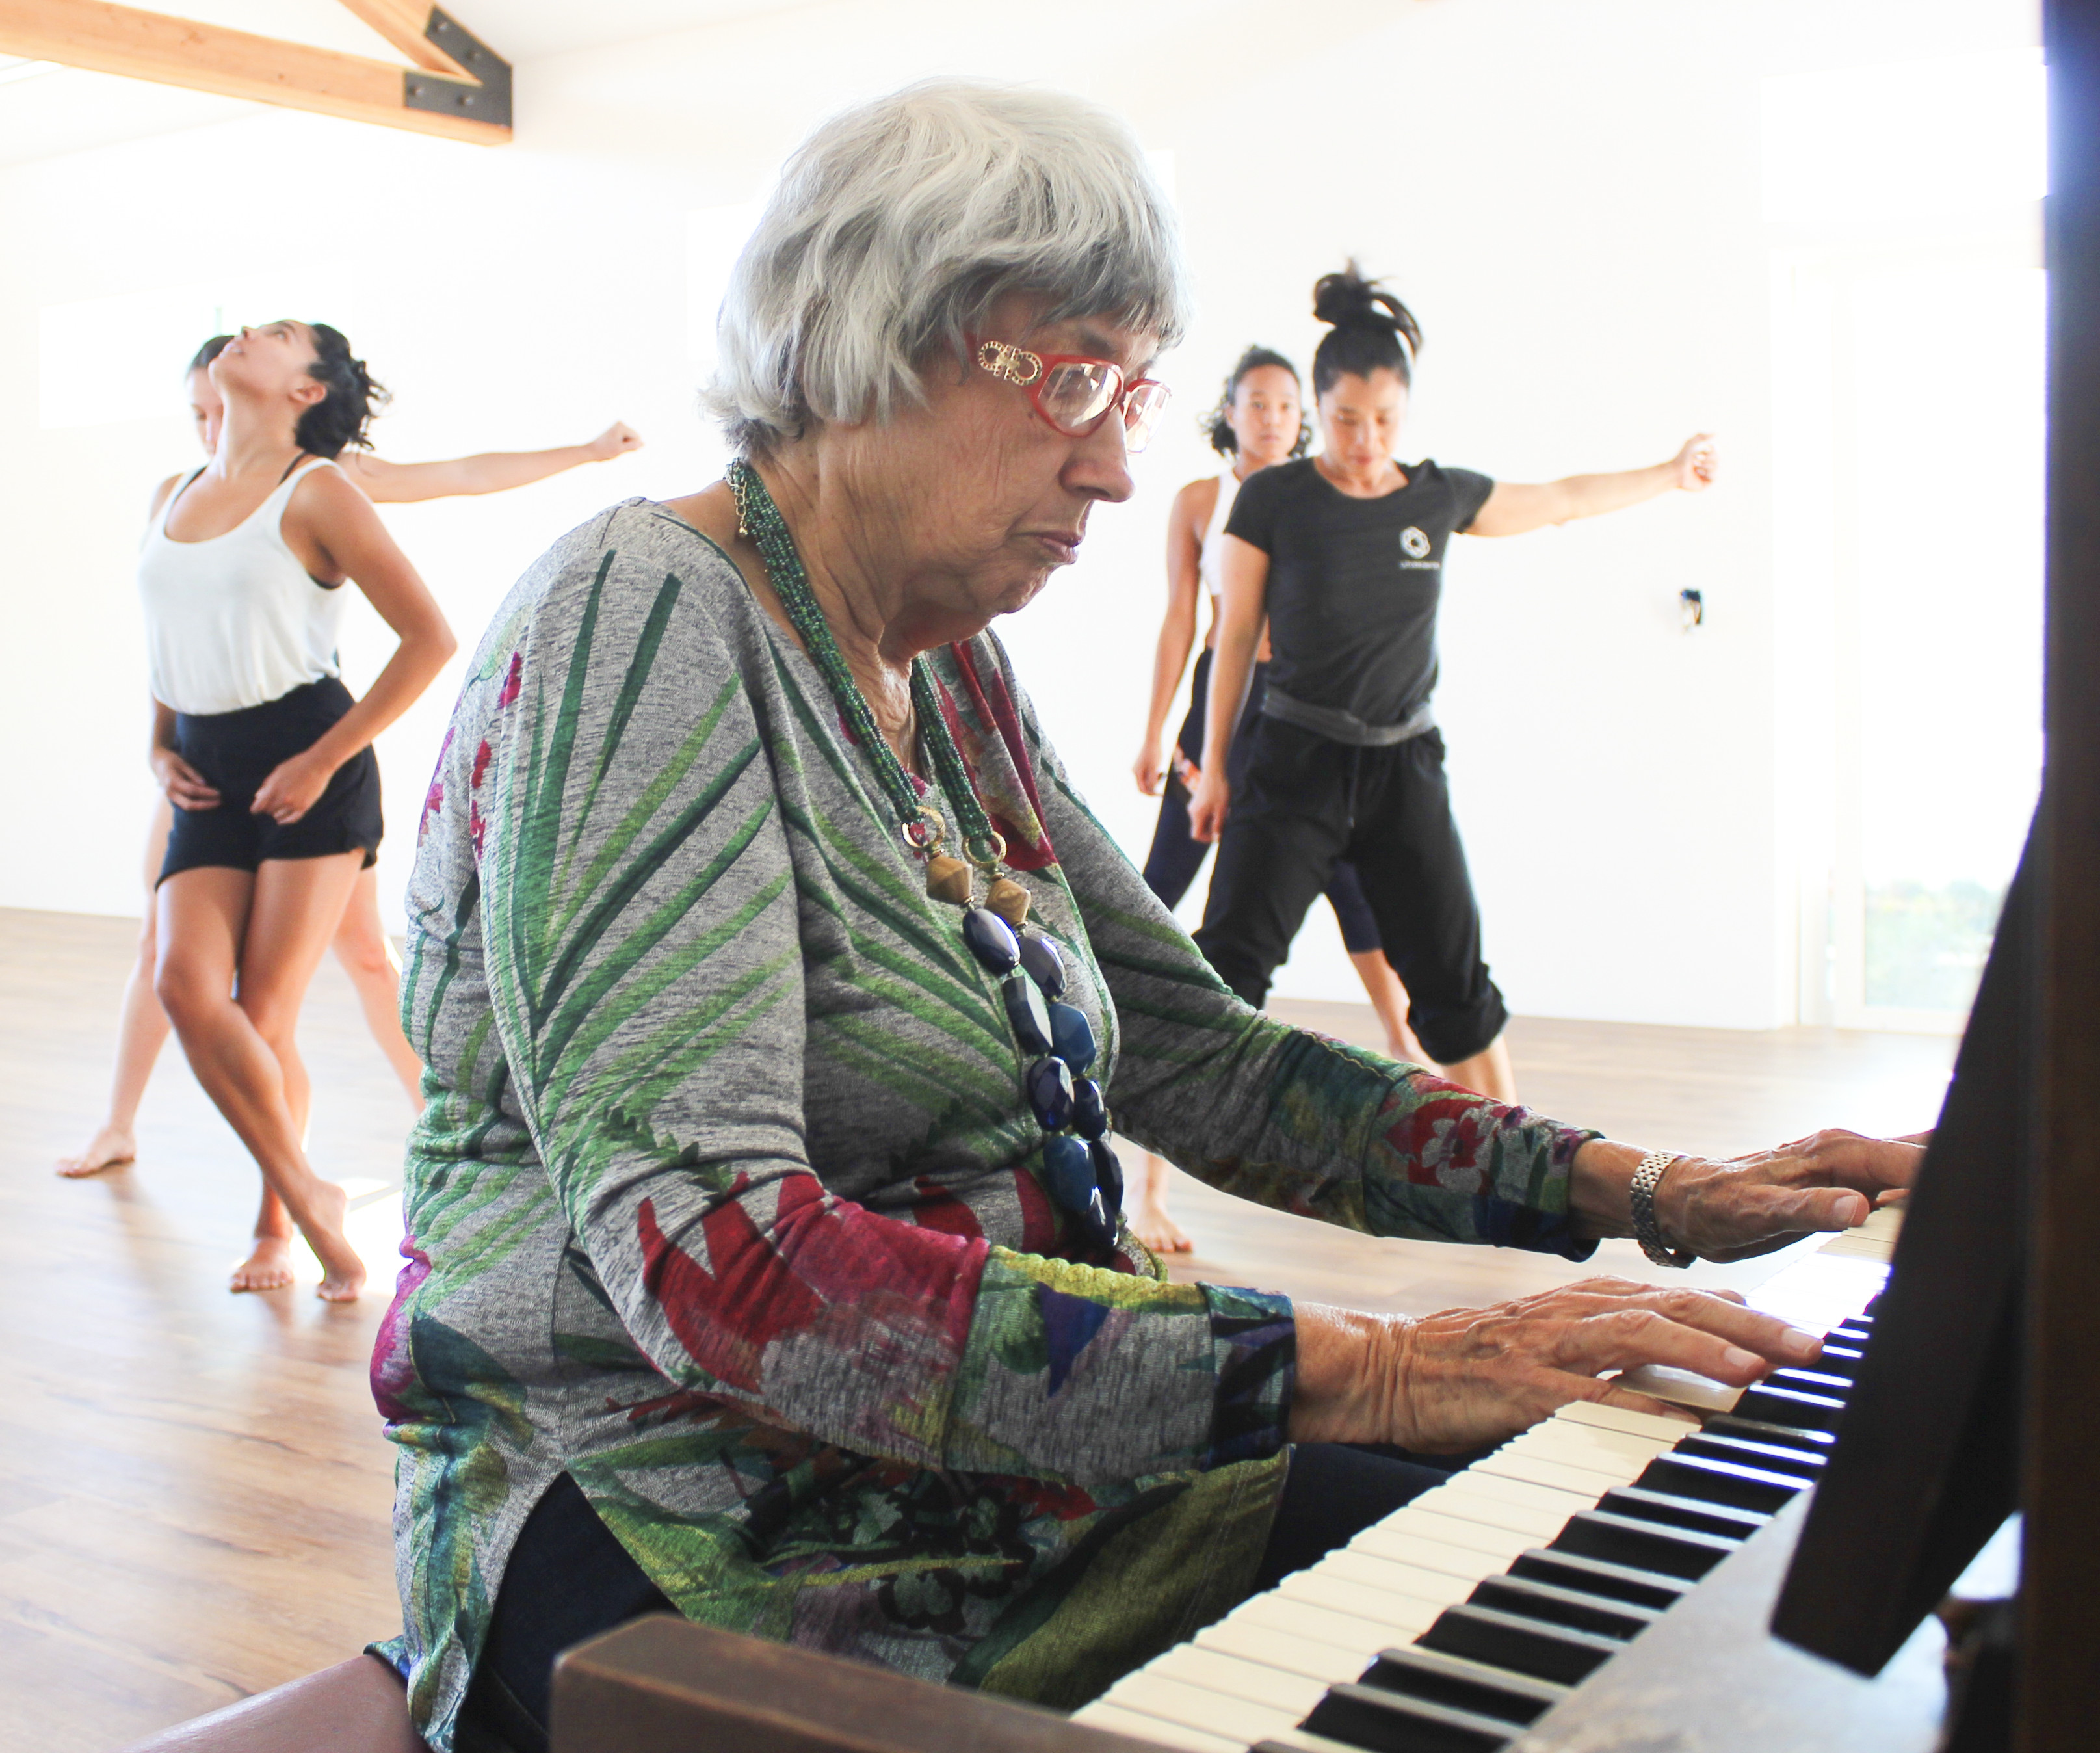 LITVAKdance collaborates with local pianist for Fall Concert at San Dieguito Academy